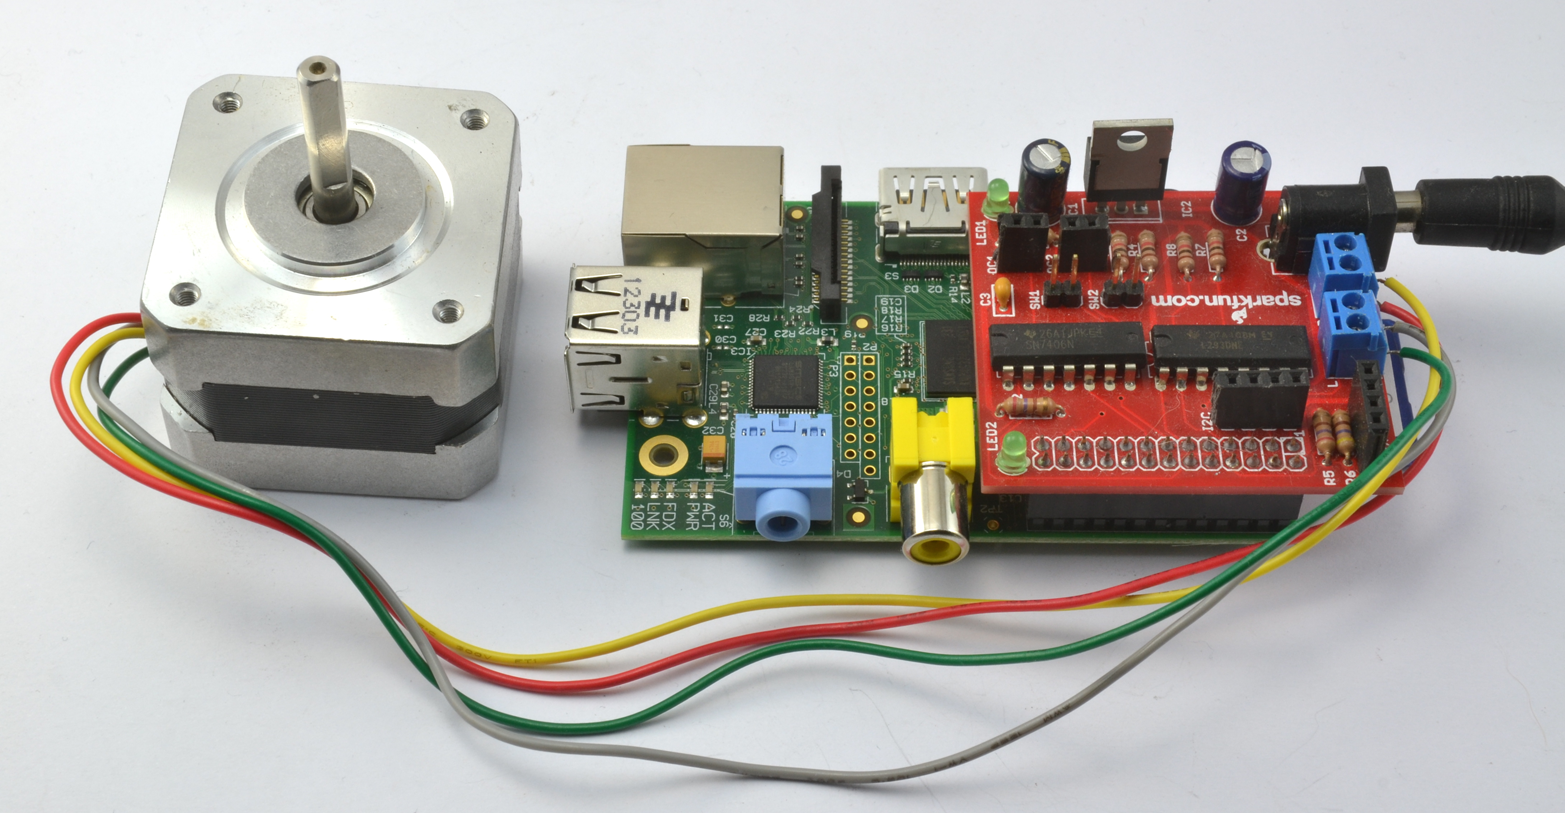 Razzpisampler for Raspberry pi stepper motor controller